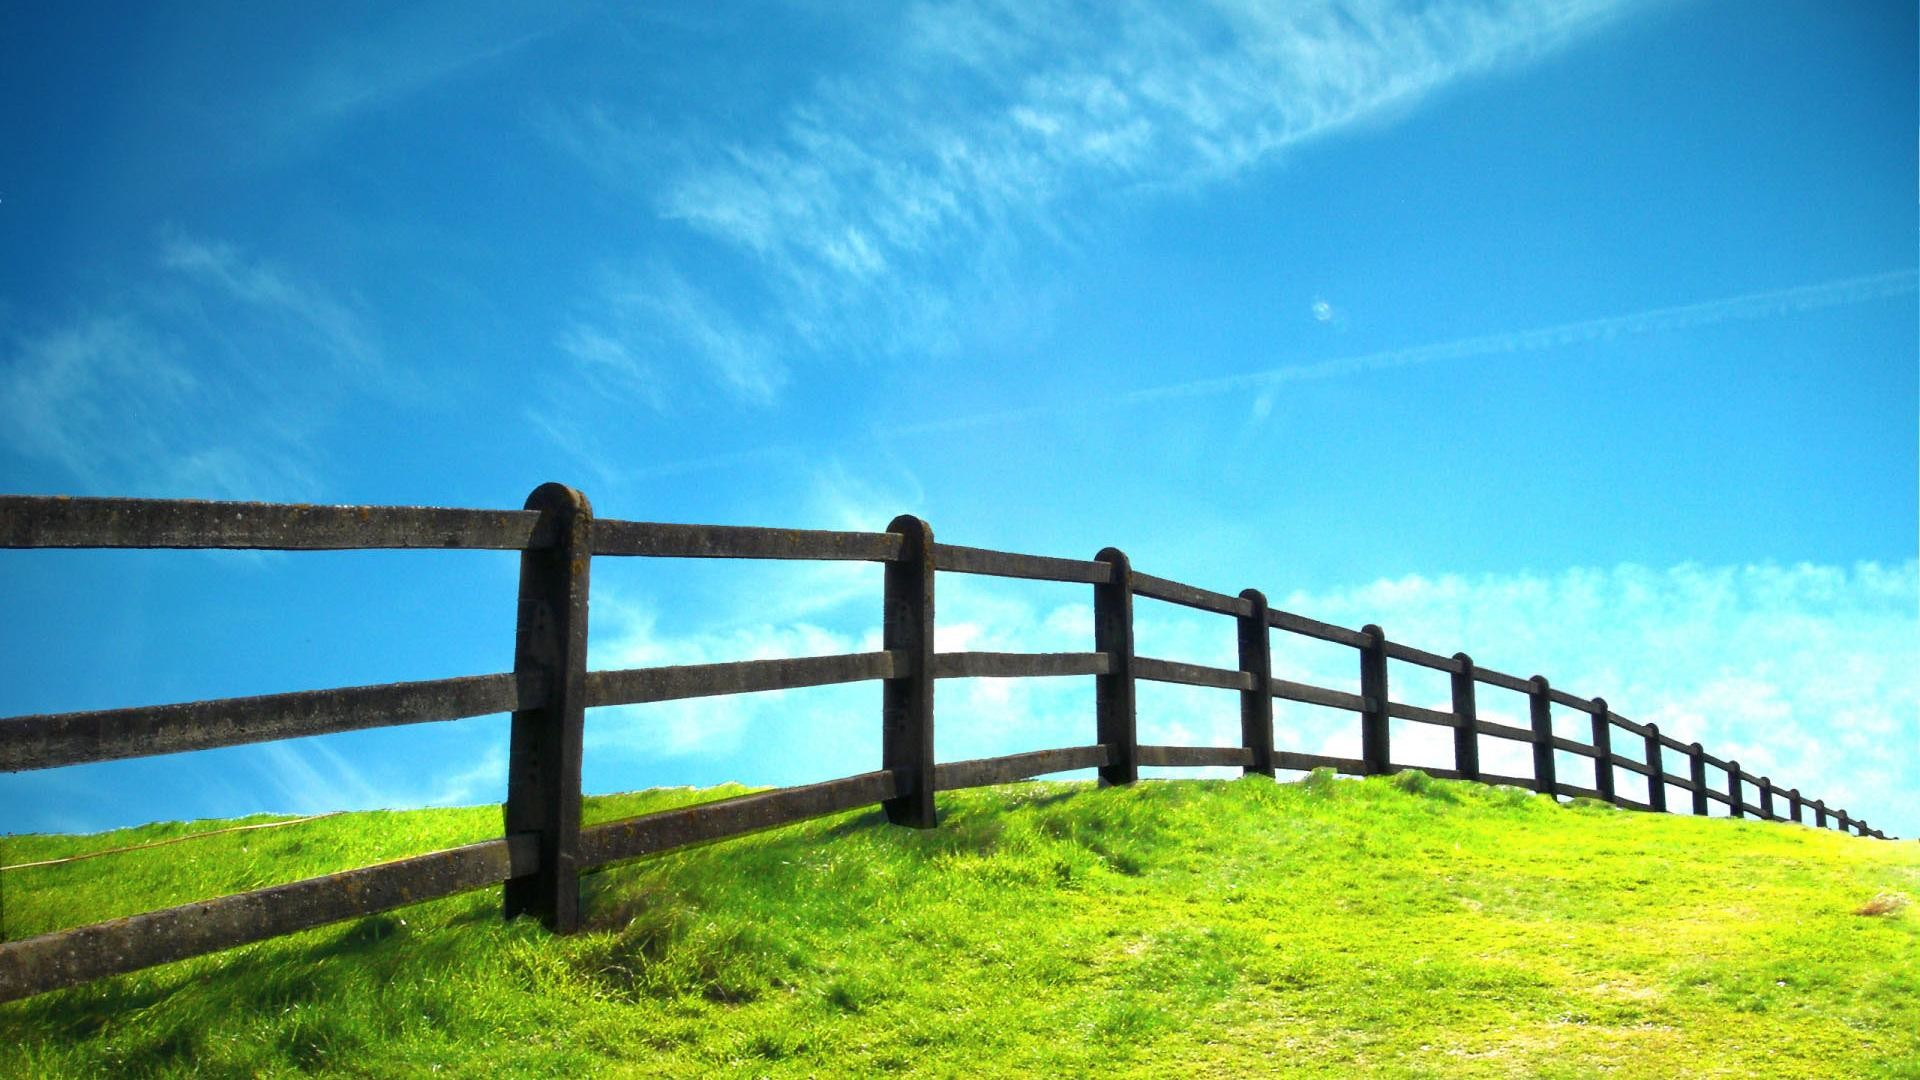 Hd Grassland And Fence Nature Scenery Background Widescreen and HD .